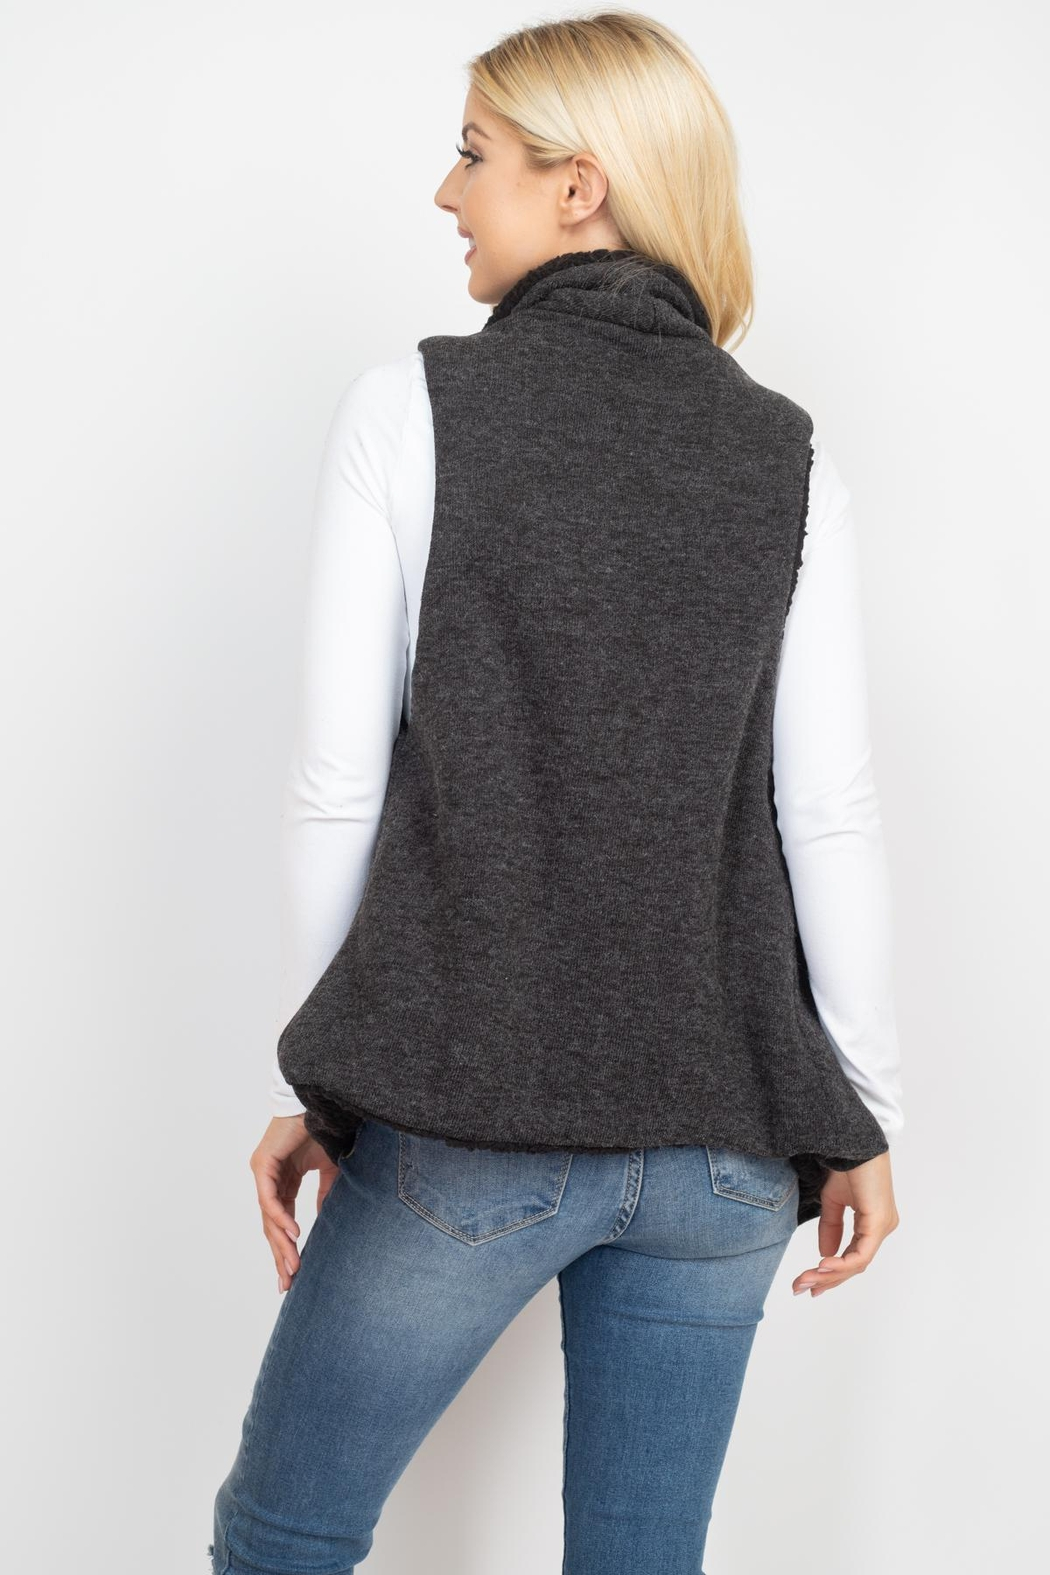 Riah Fashion Wool-Shawl-Vest-With-Pocket - Front Full Image